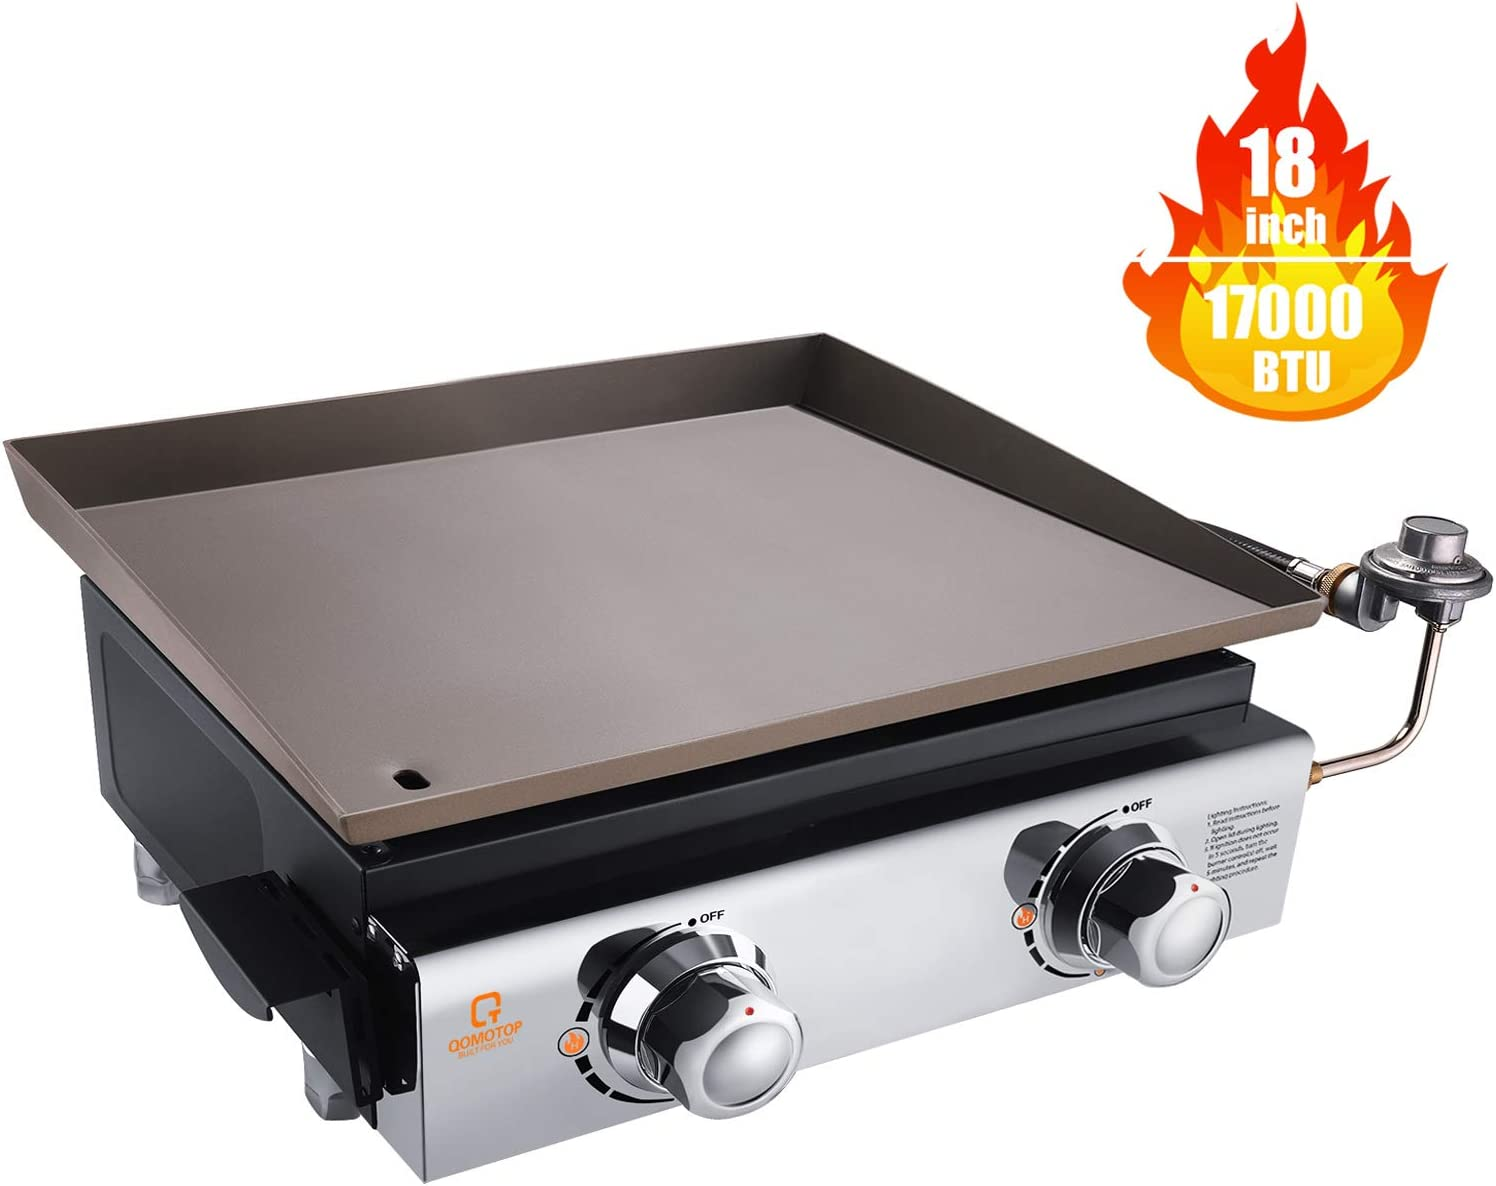 Best to clean up: QOMOTOP Tabletop Grill